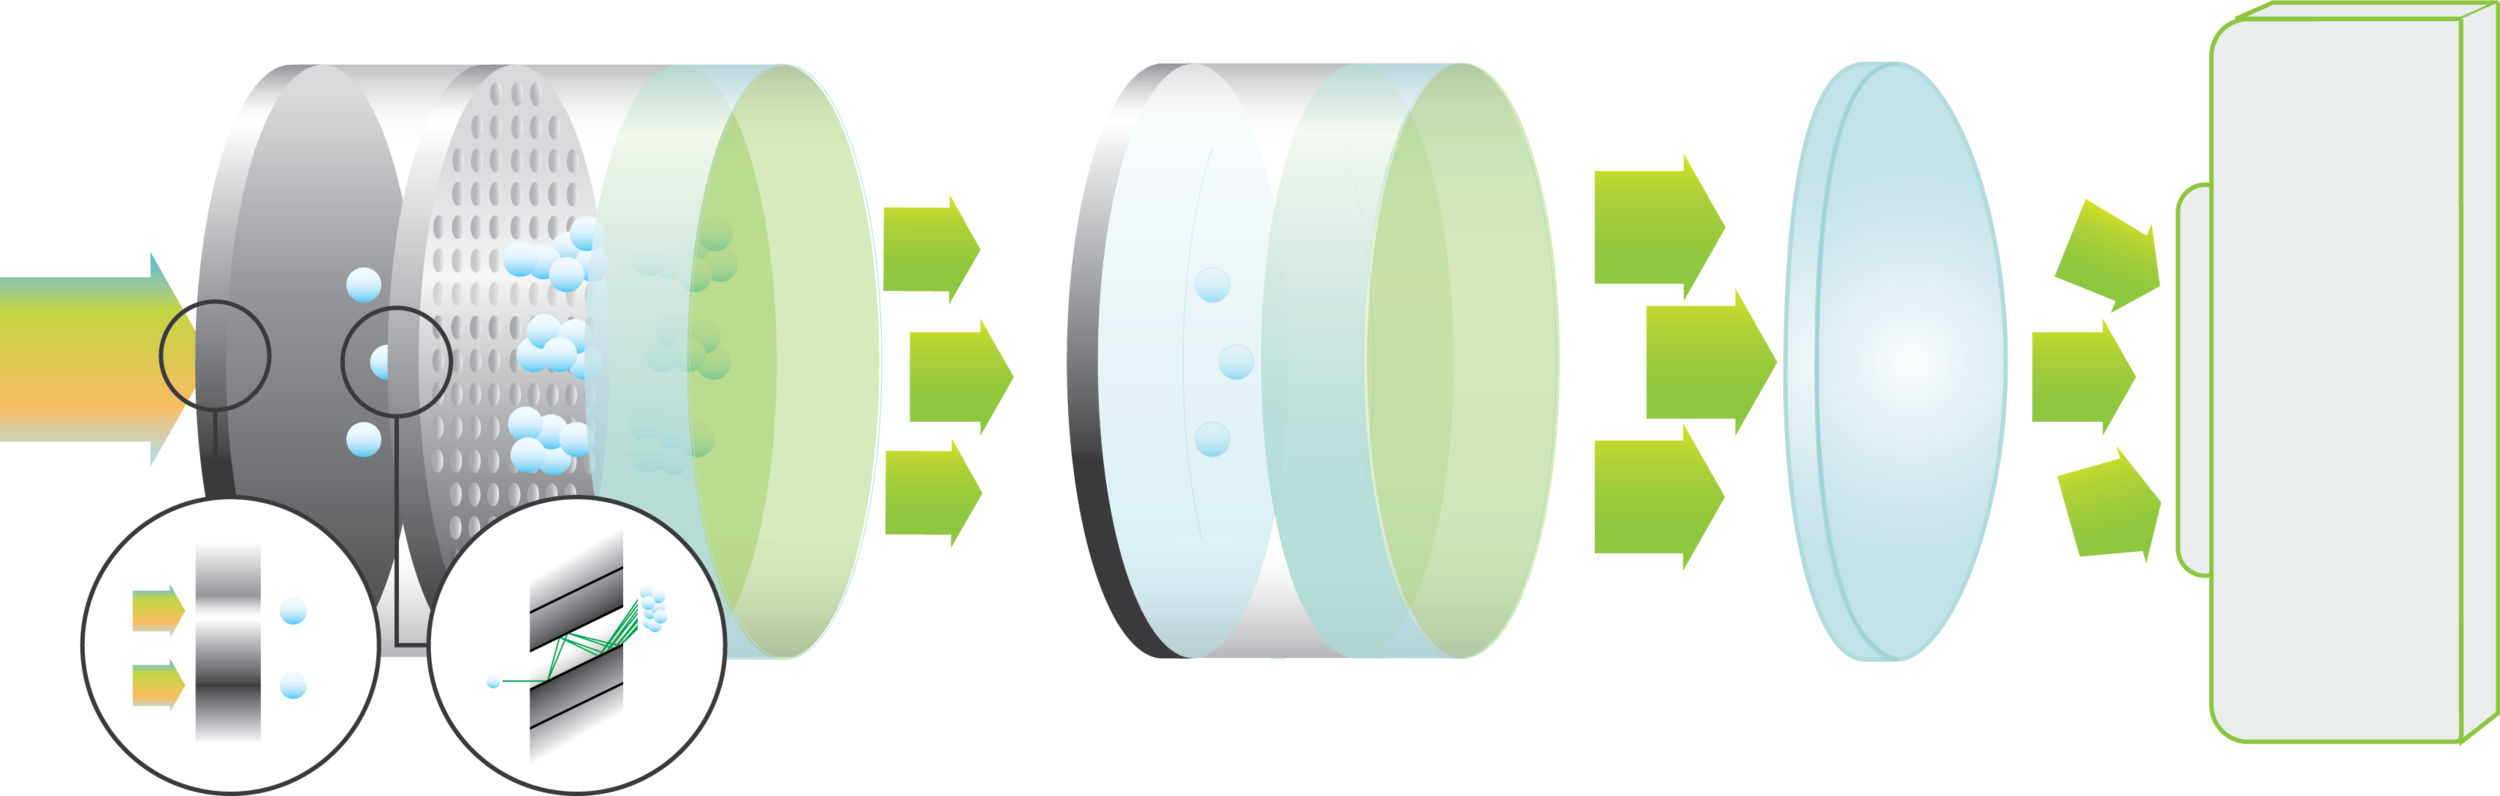 Two-stage intensifier, with lens and camera (none).png